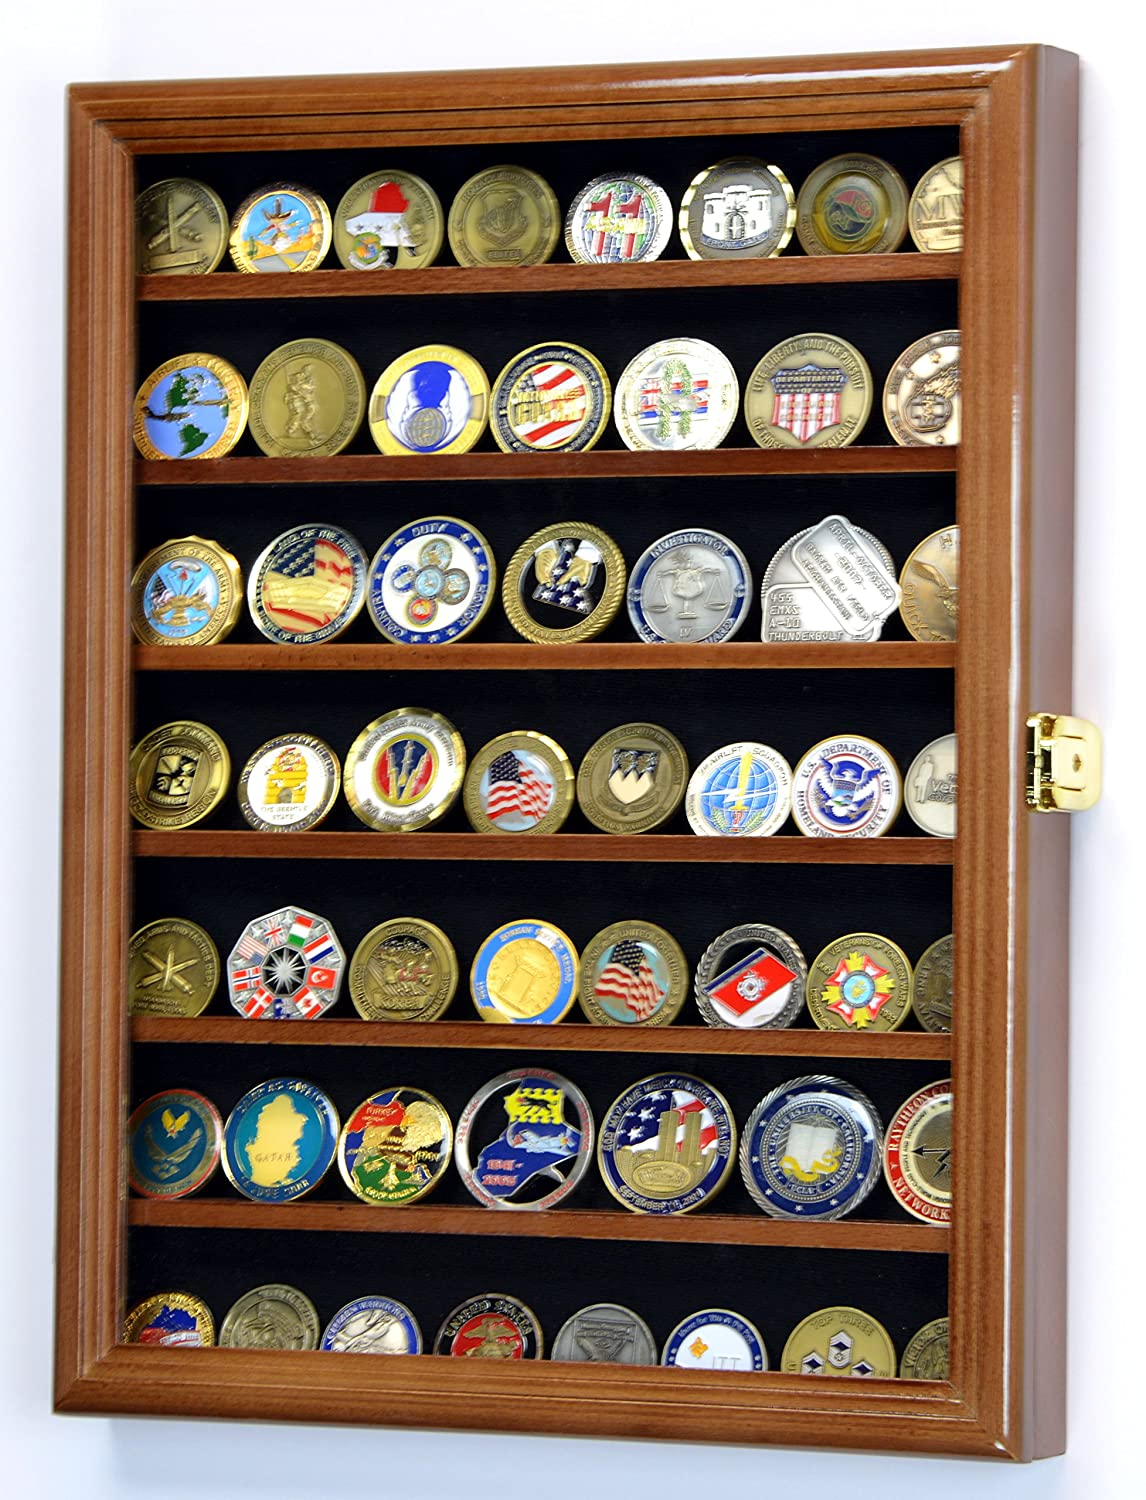 Military Challenge Coin Display Case Cabinet Holder Wall Rack w/ UV Protection -Walnut sfDisplay.com Factory Direct Display Cases